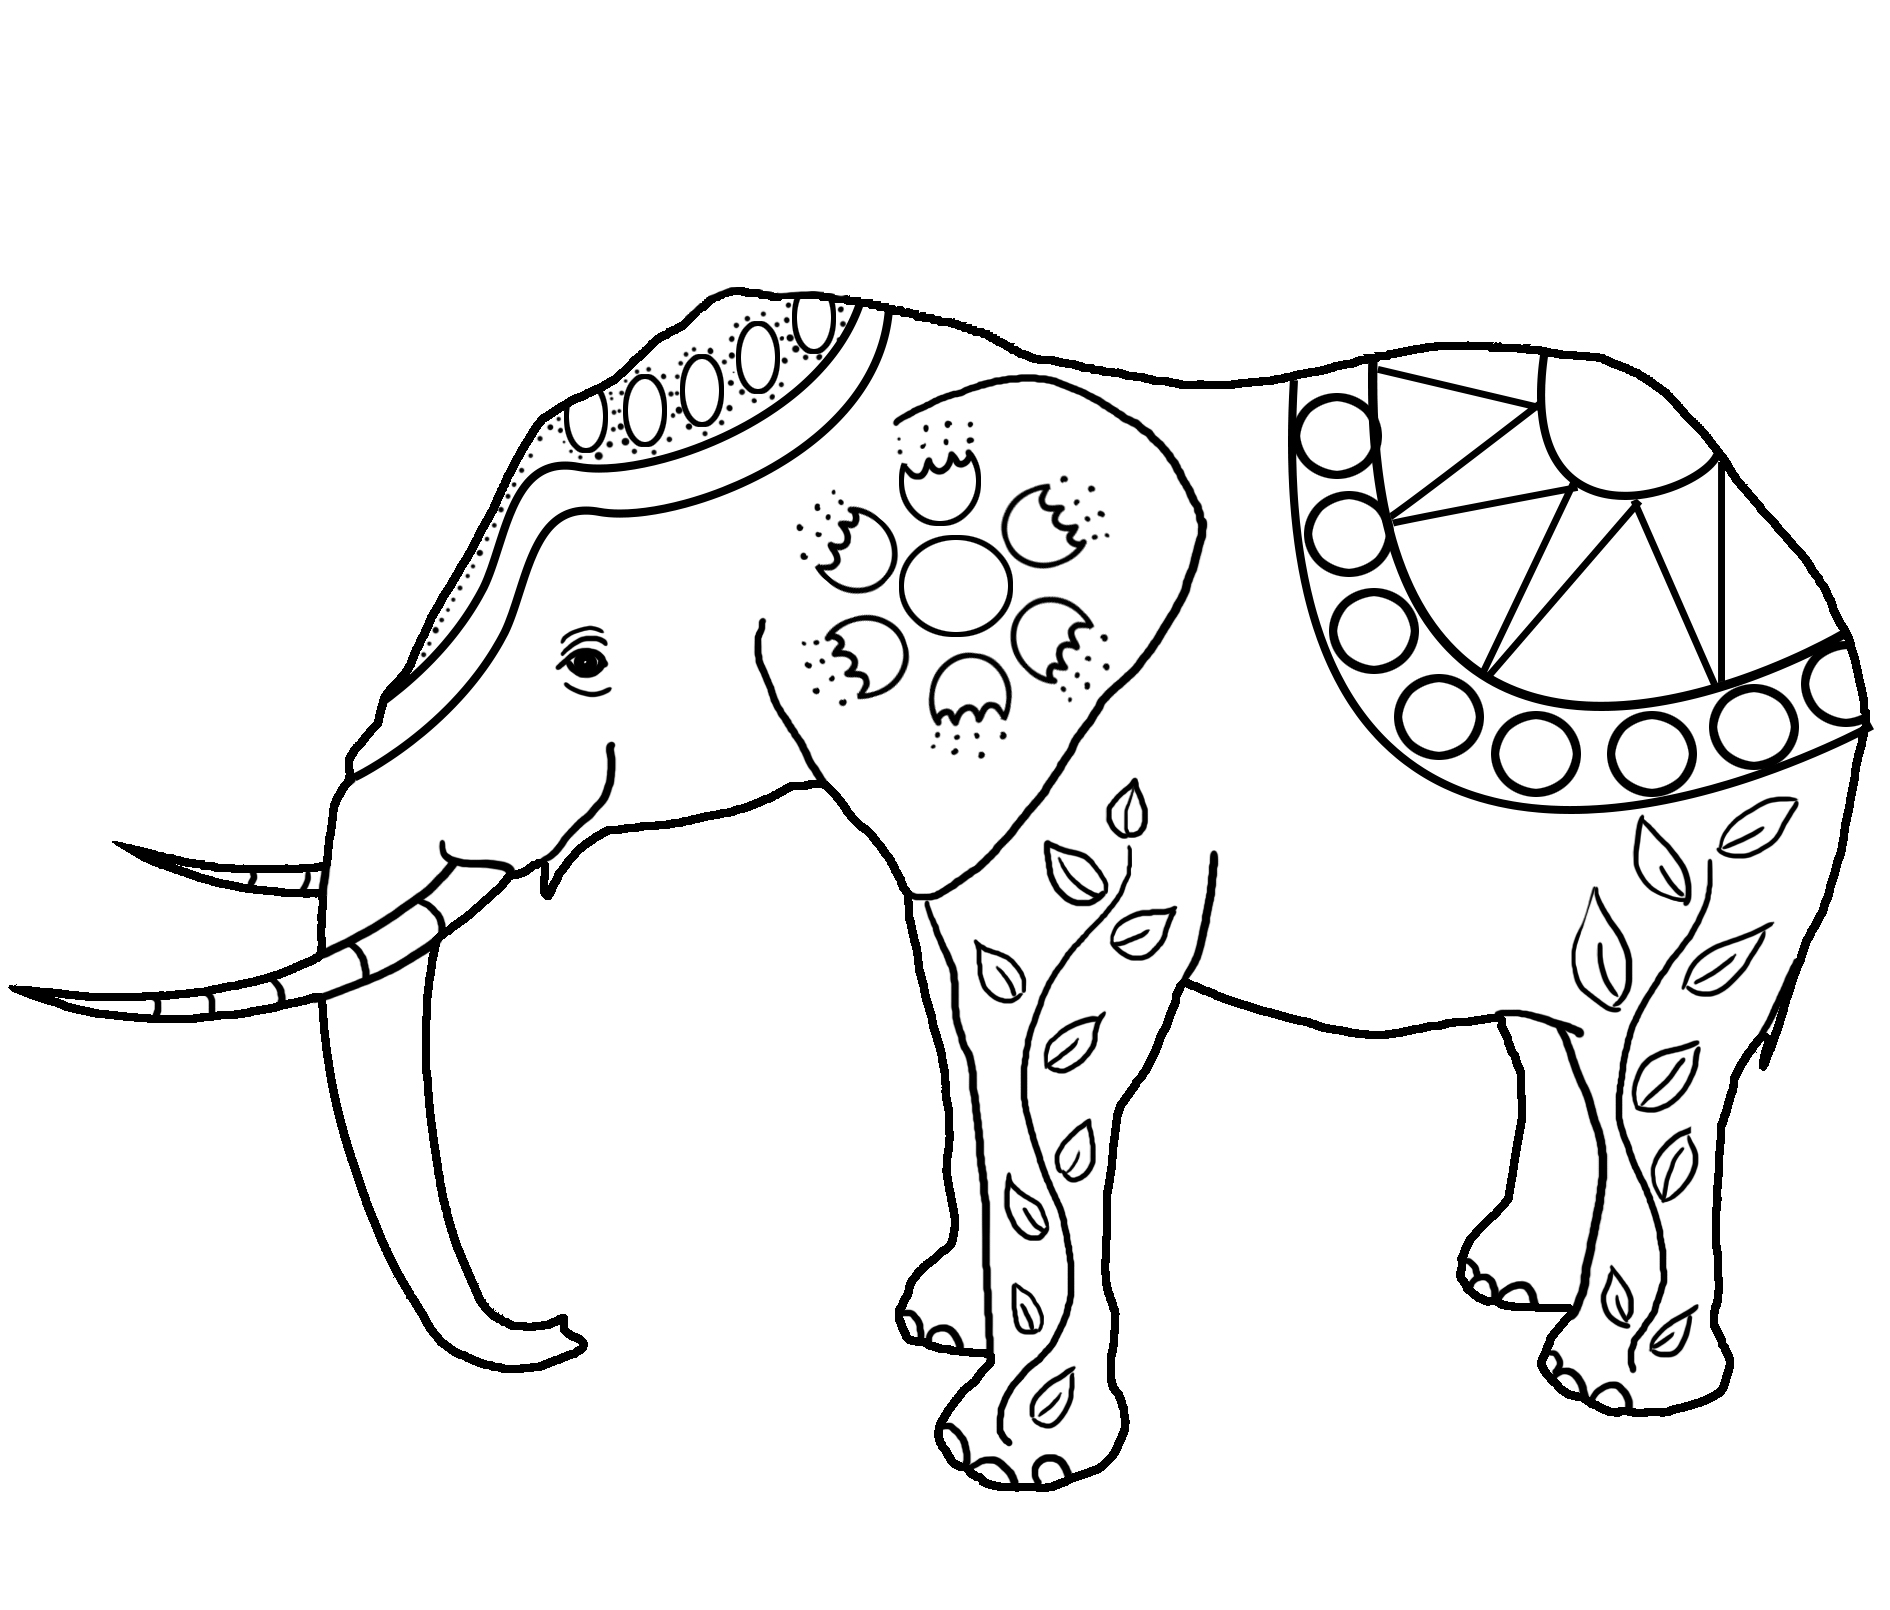 decorated elephant drawing for coloring